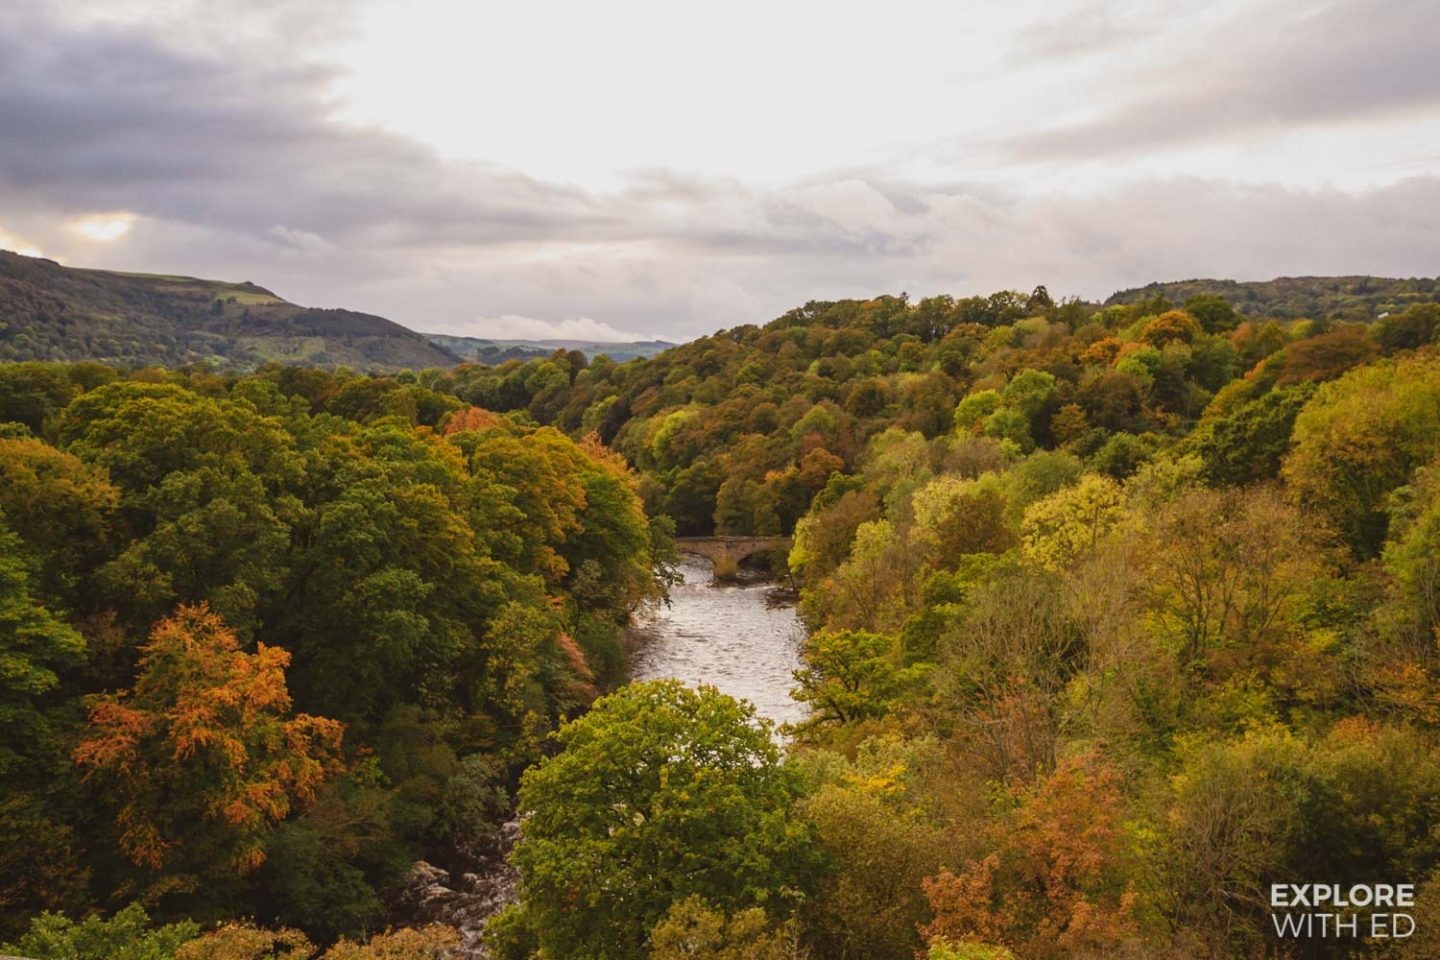 Autumnal views of the river from Pontcysyllte aqueduct, Wales